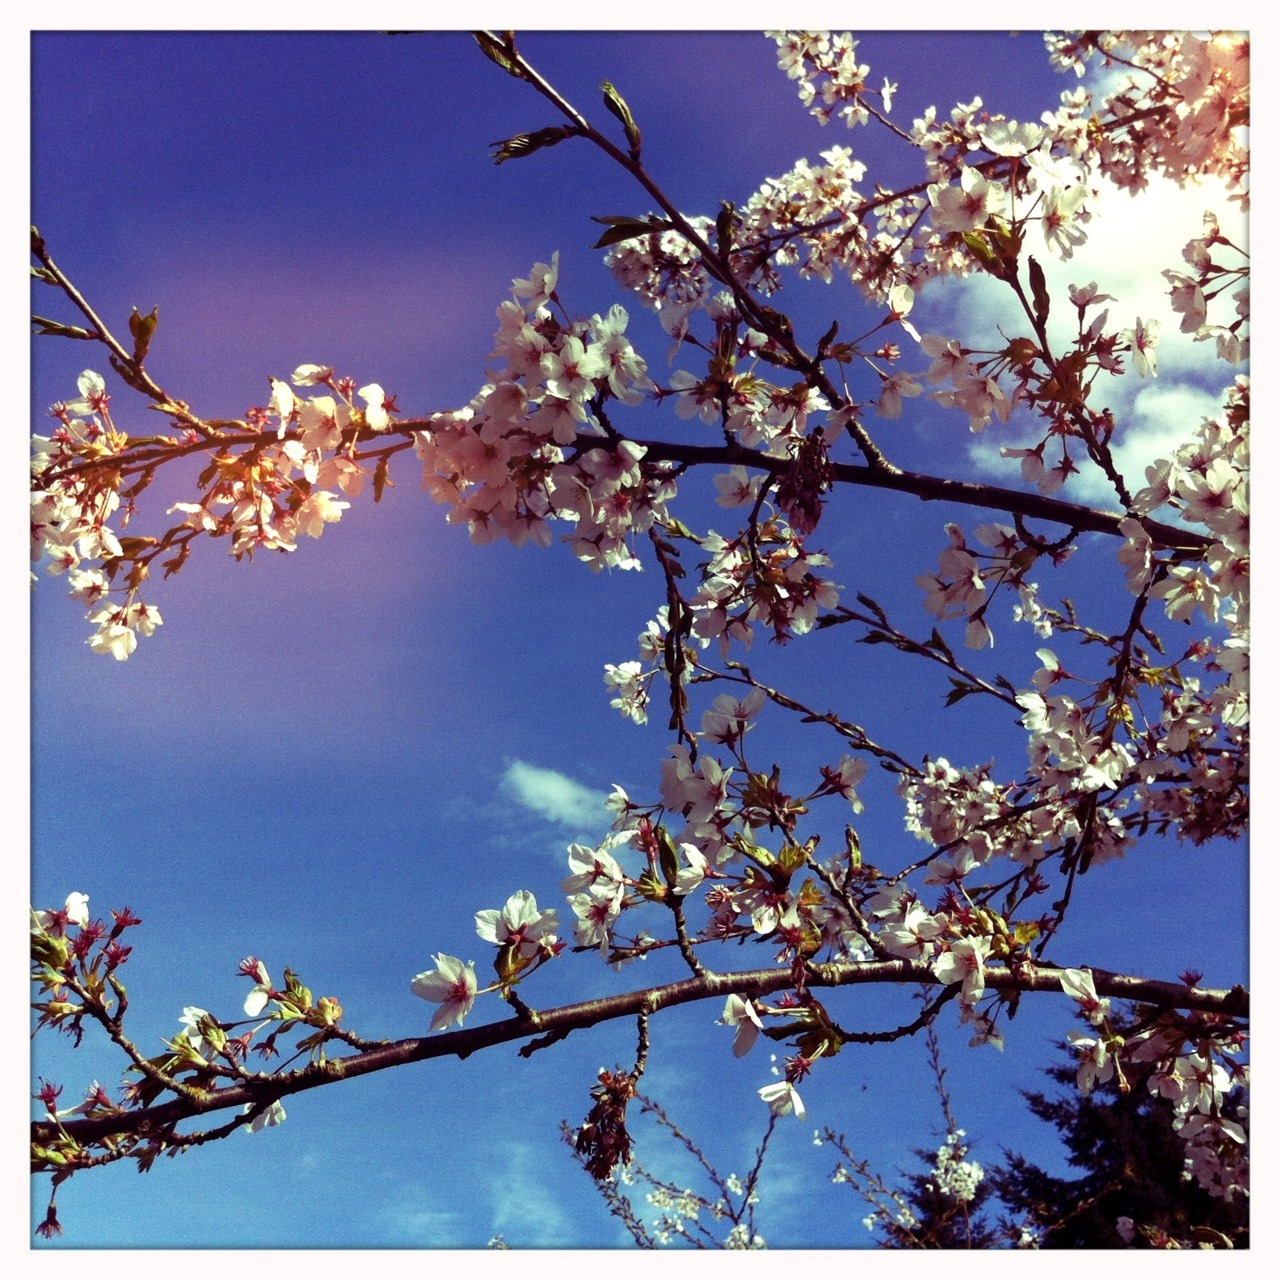 Cherry Blossoms #makebeautiful Chunky Lens, Blanko Film, No Flash, Taken with Hipstamatic #Hipstacode_CKBK © 2012 Kent Kangley